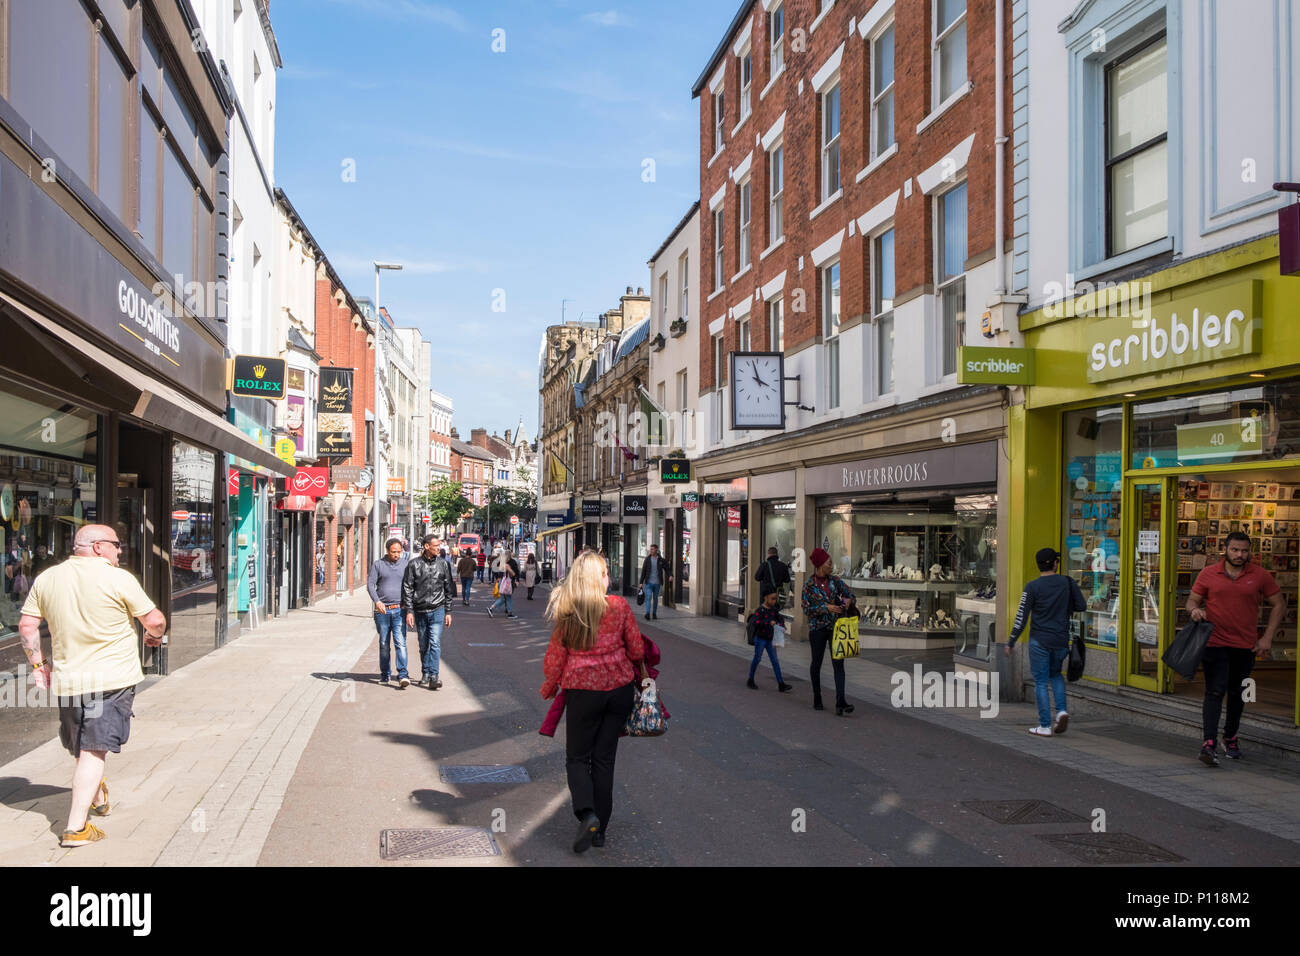 Pedestrianised shopping area. Shoppers on Commercial Street in Leeds city centre, West Yorkshire, England, UK - Stock Image